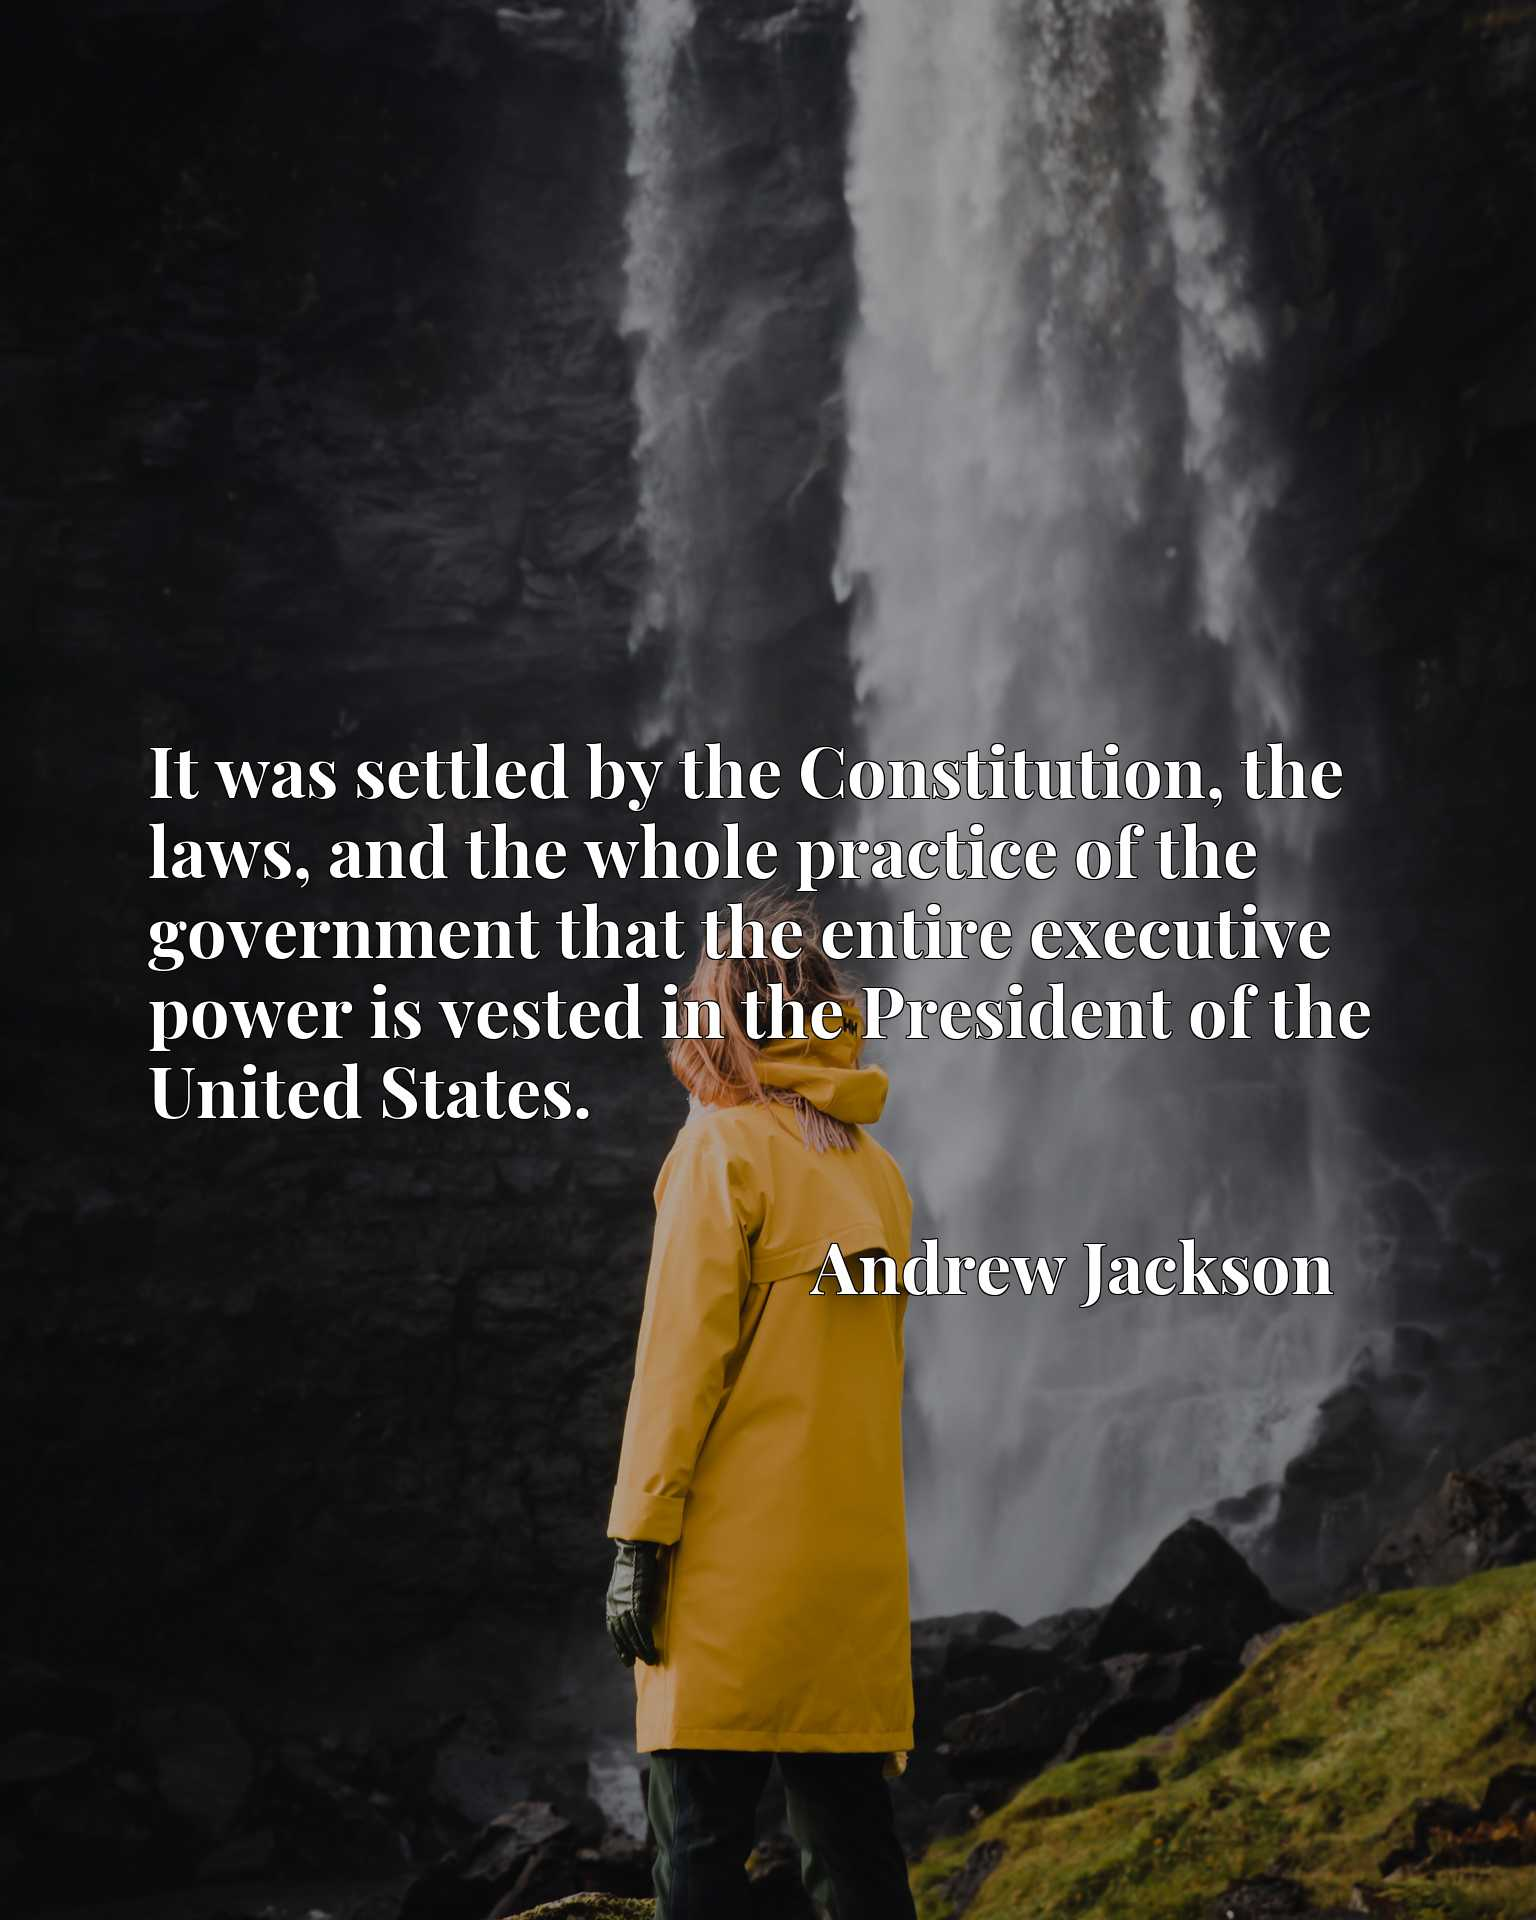 It was settled by the Constitution, the laws, and the whole practice of the government that the entire executive power is vested in the President of the United States.